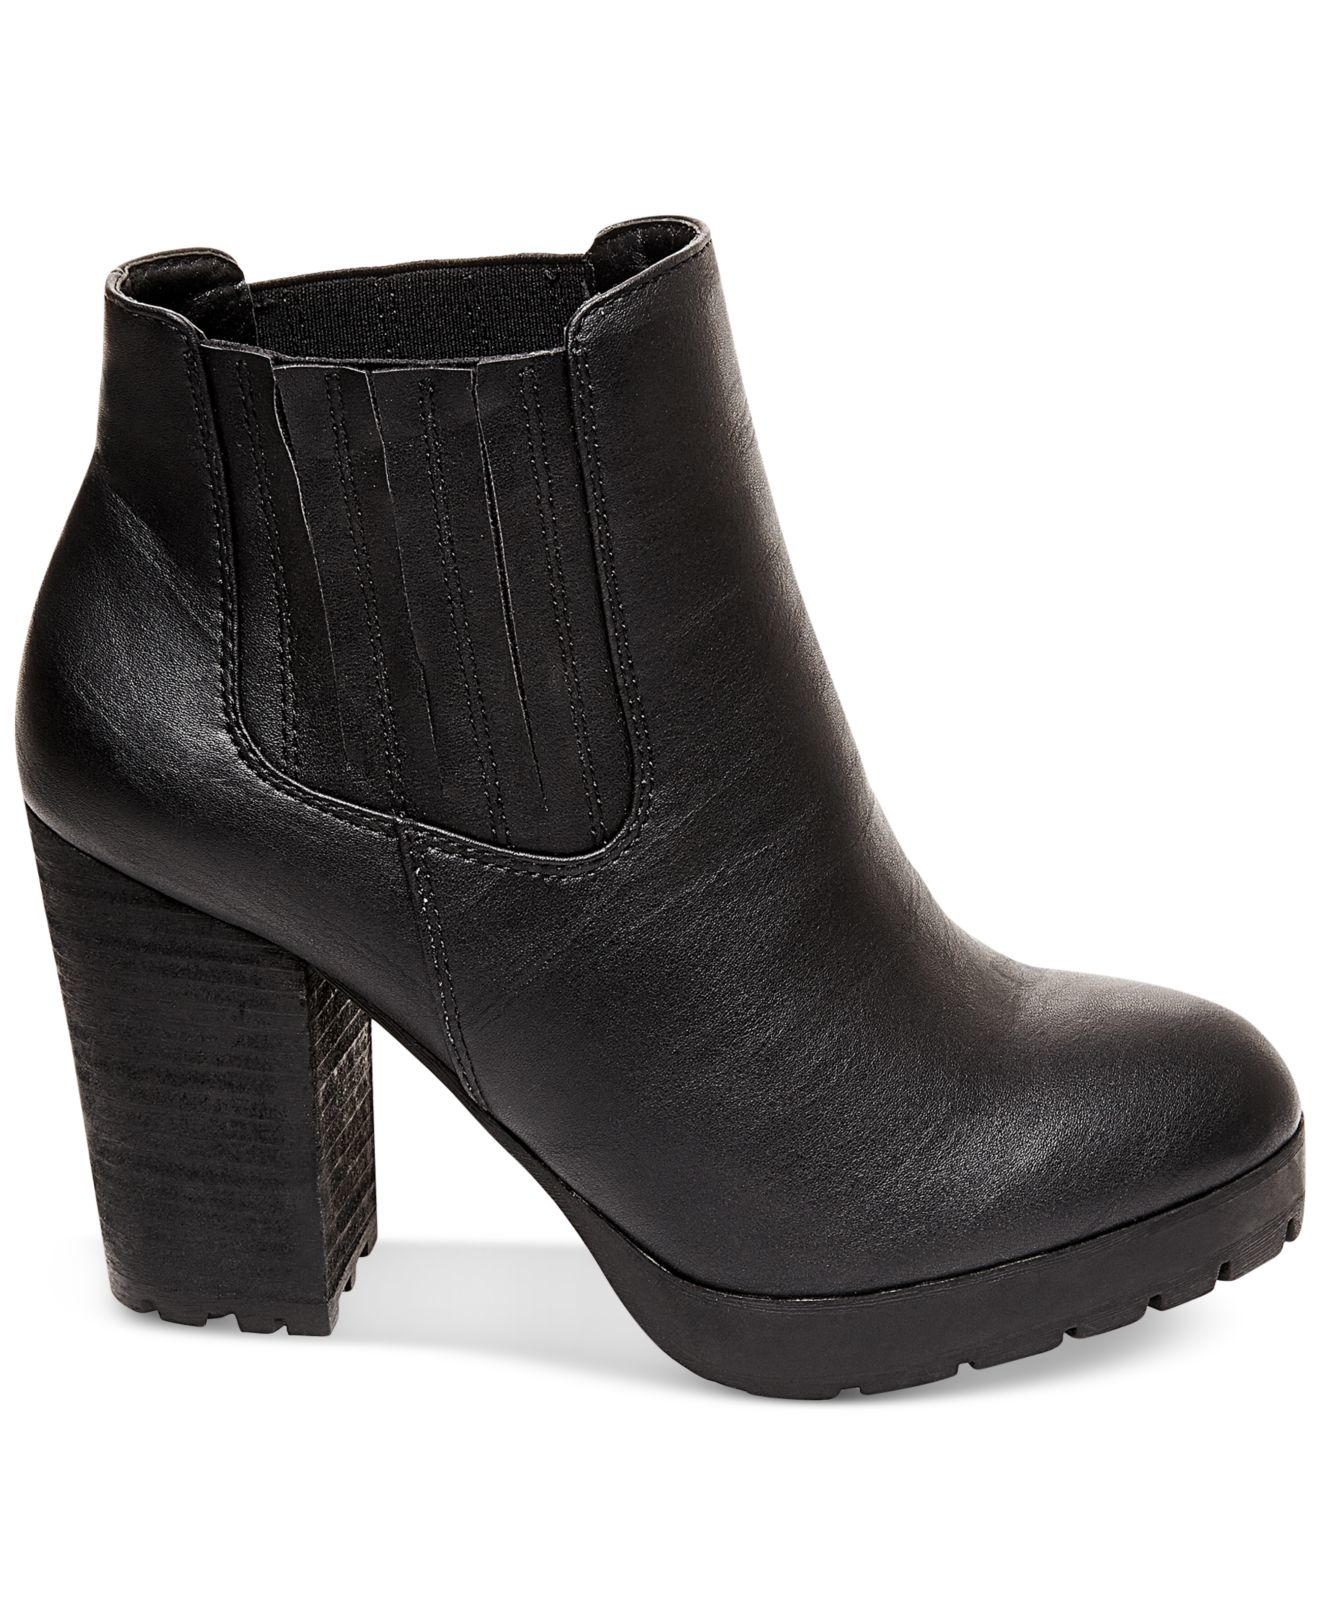 Madden Girl Mazziee Ankle Booties in